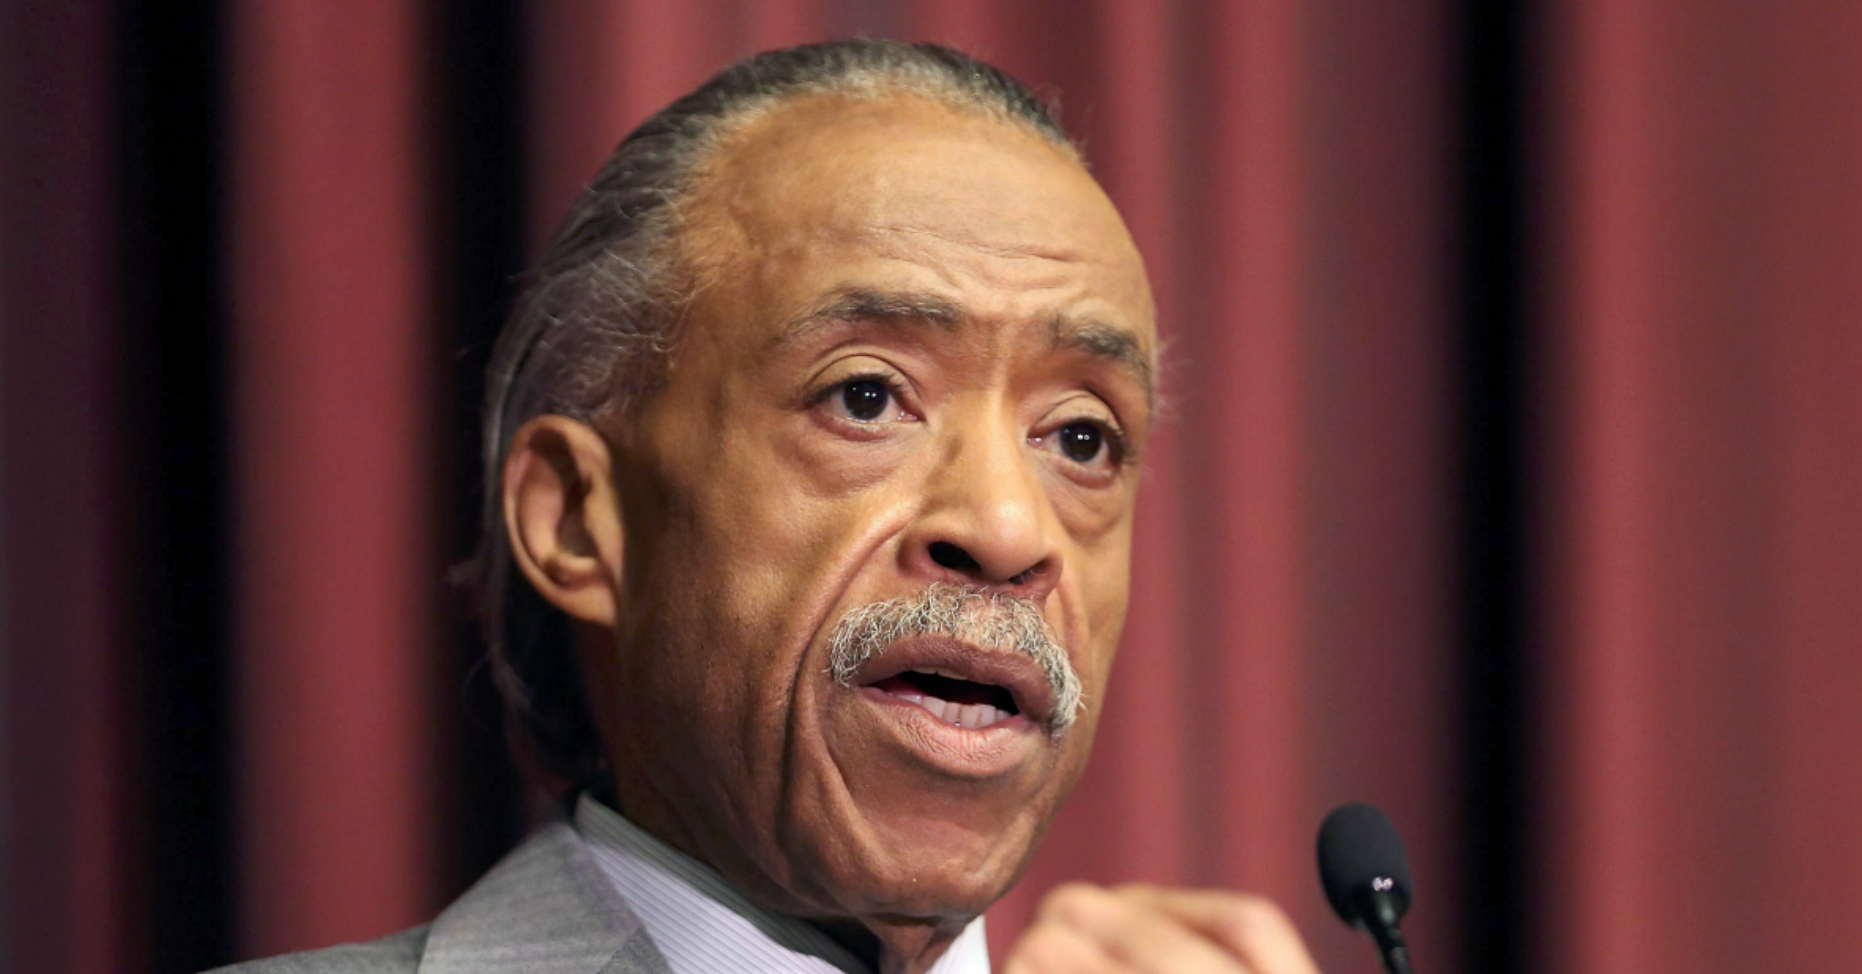 Al Sharpton Says He Not Ruling Out 2020 Run for President